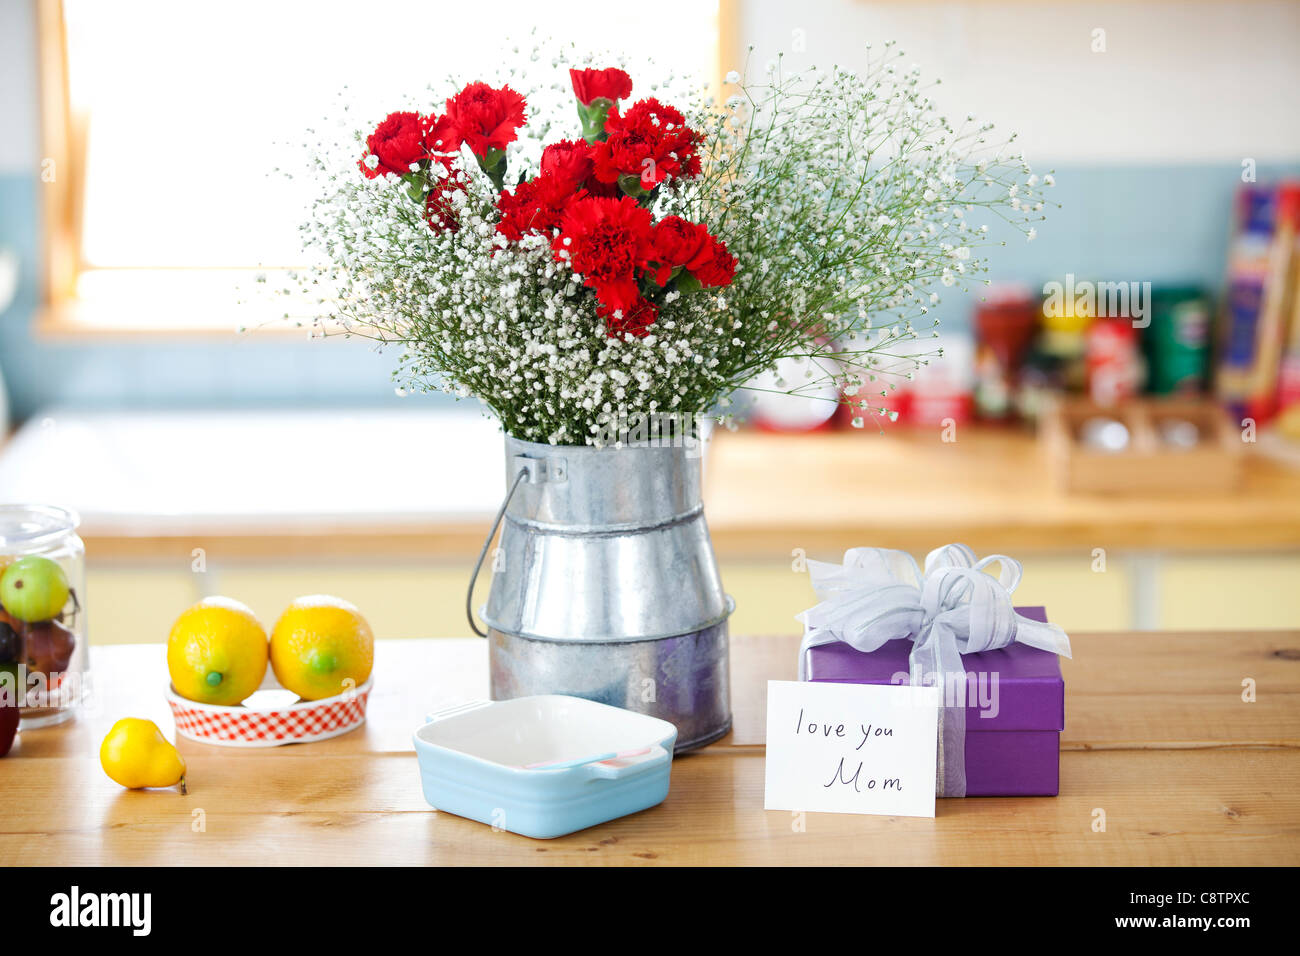 Wrapped Gift Box And Bunch Of Flower On The Kitchen Counter Stock ...